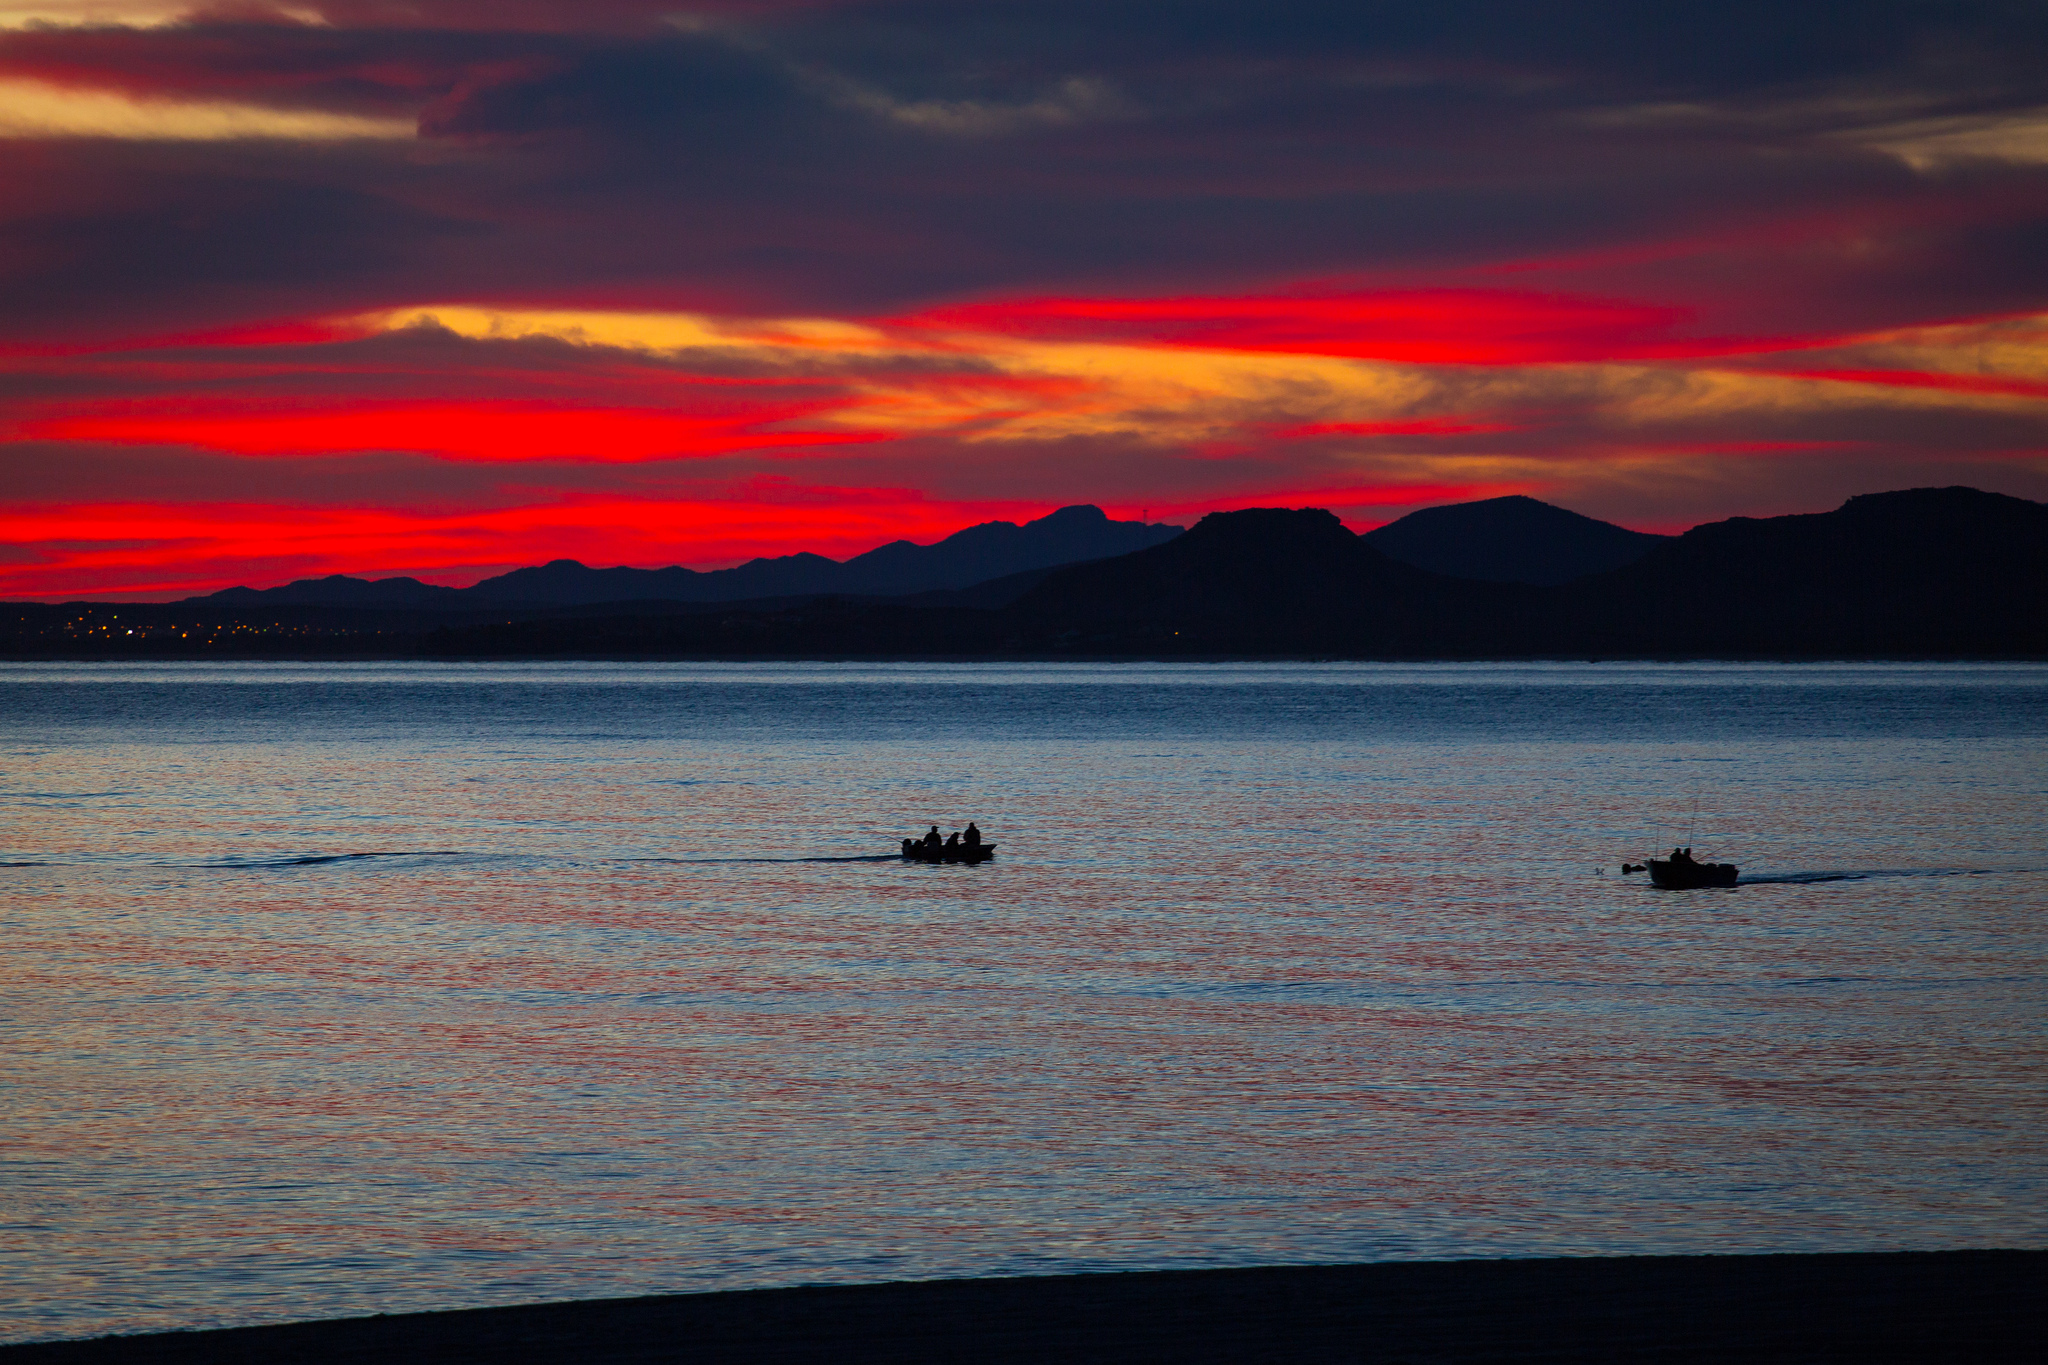 Another sunrise shot, showing the local Baja fishermen getting ready to haul in a catch before the epic winds pick up. The sunrises were so ridiculously colorful. Flickr - Zach Dischner.